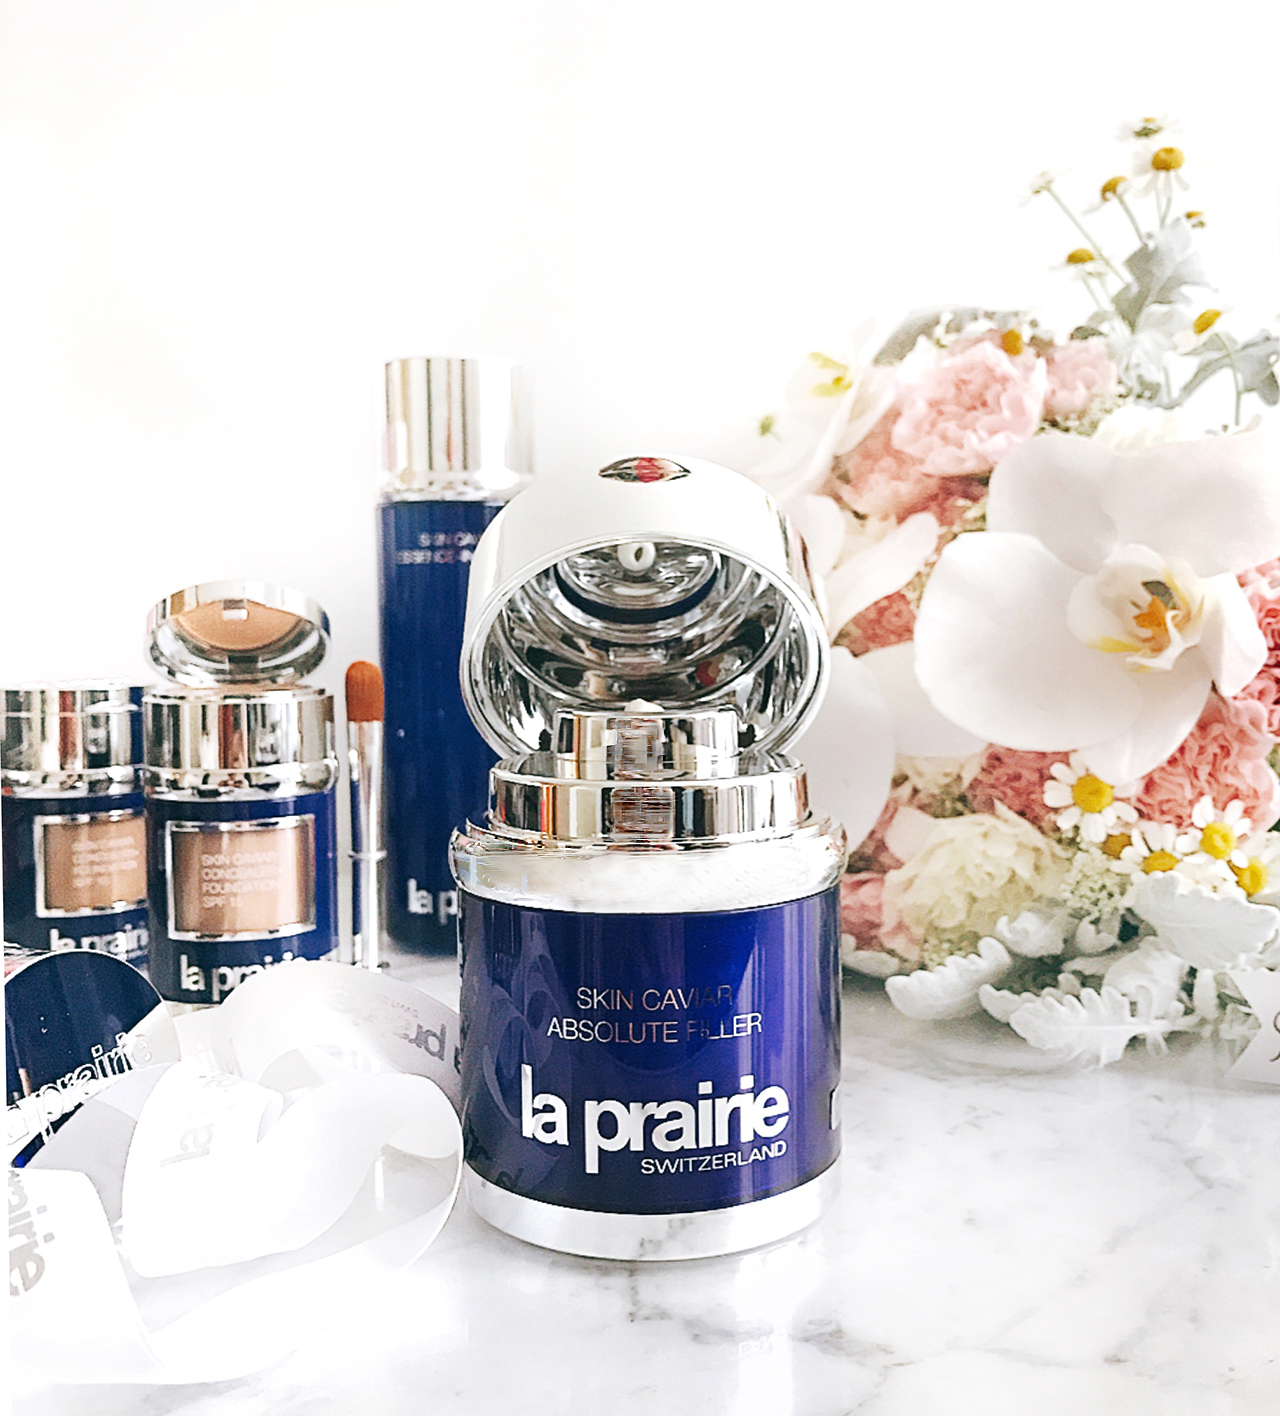 La Prairie Skin Caviar Absolute Filler & Concealer Foundation